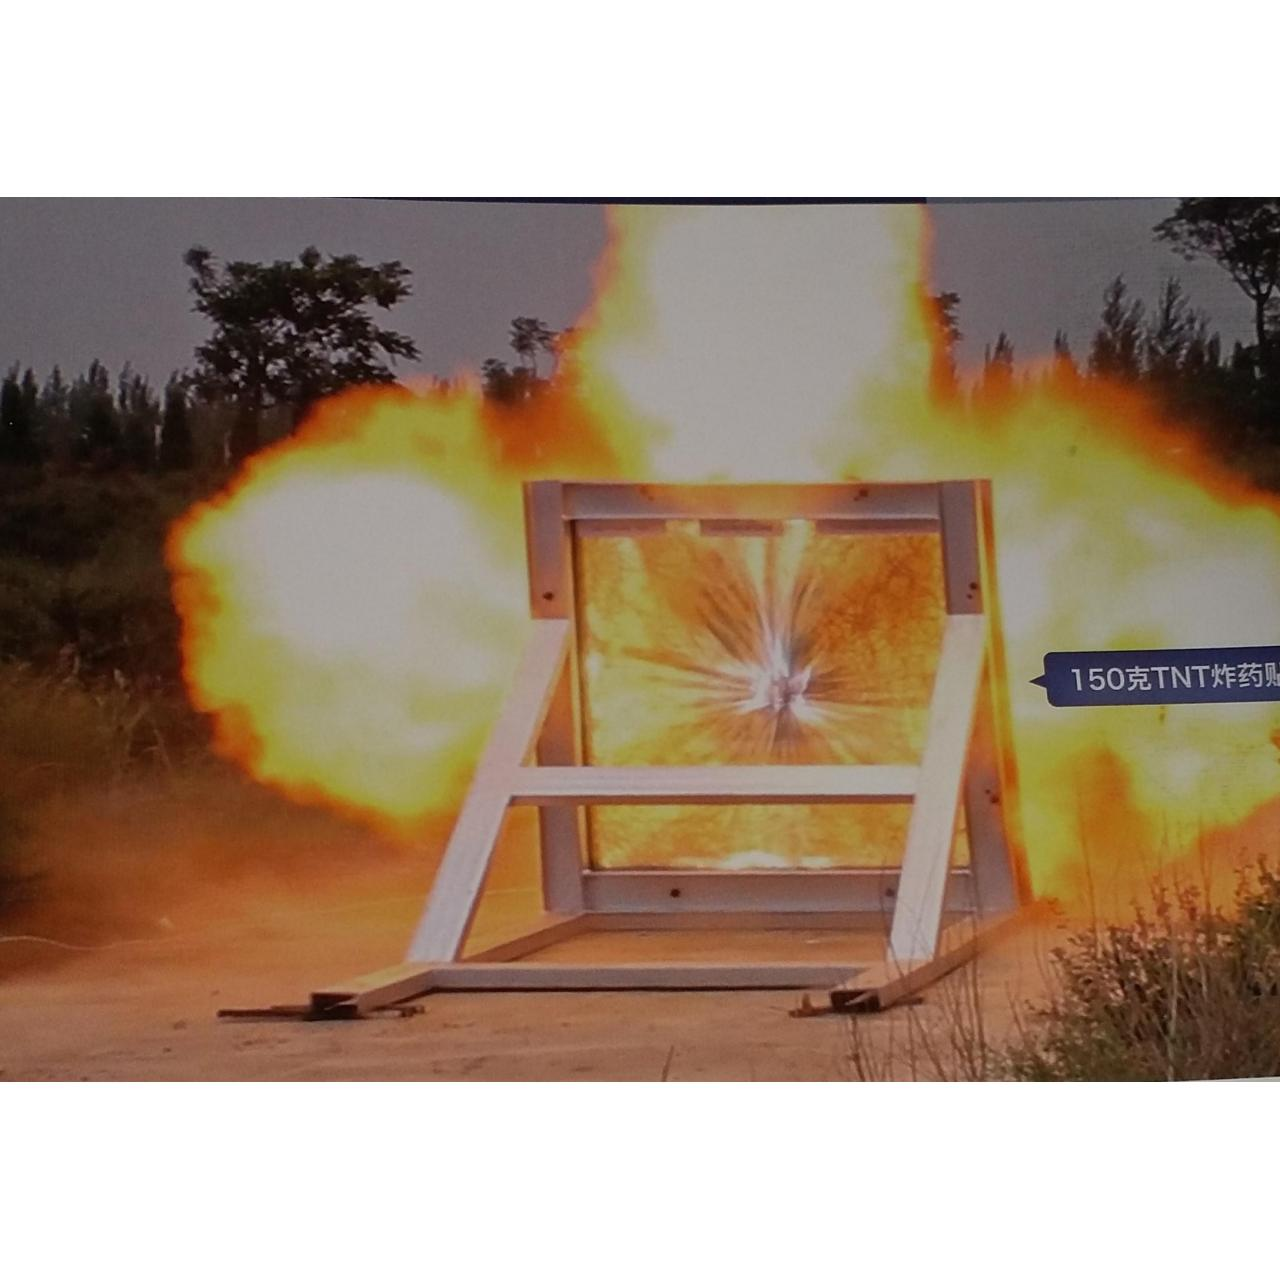 Blast resistance glass/explosion-proof glass/bullet-proof glass